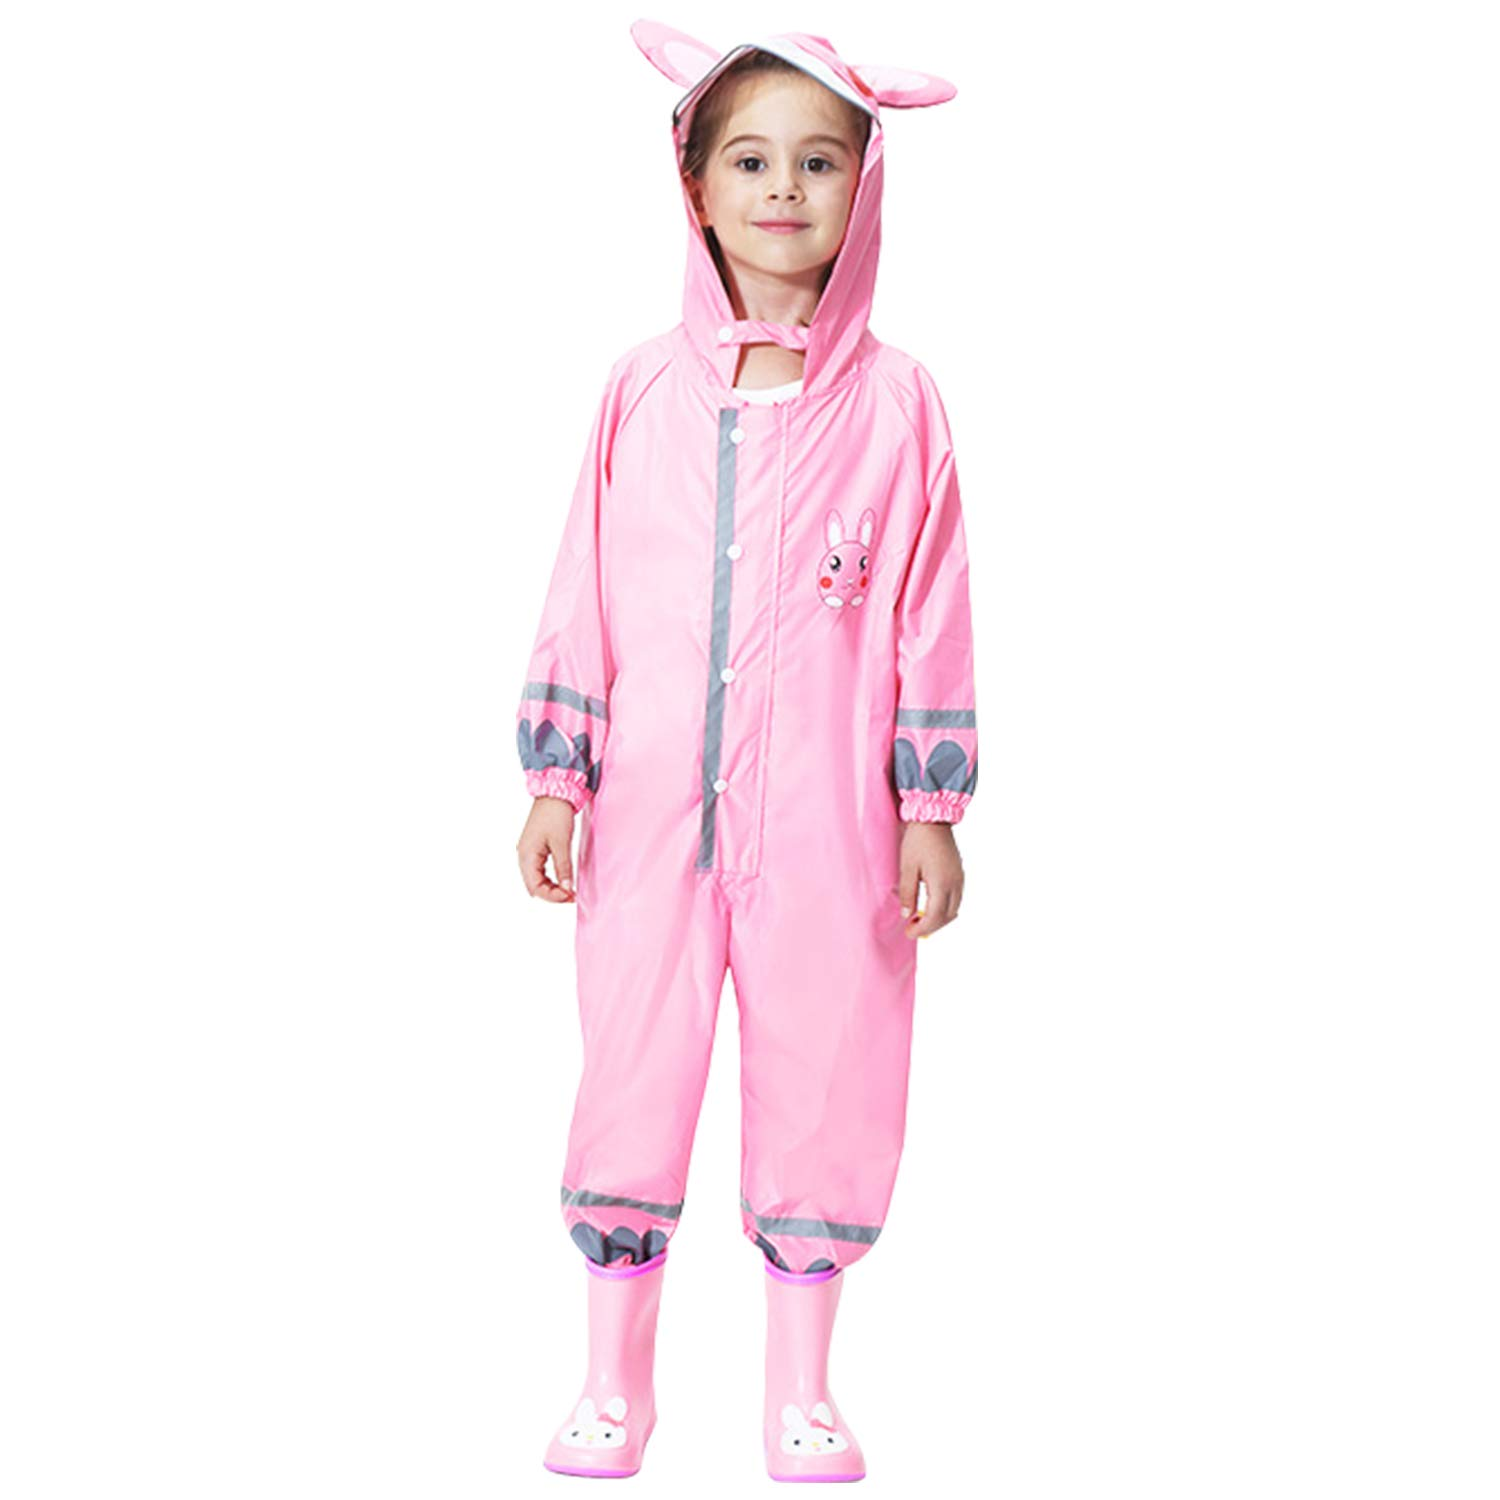 Kids Button Rain Suit All-in-one Waterproof Puddle Suits Hooded Raincoat Jumpsuit EM6700